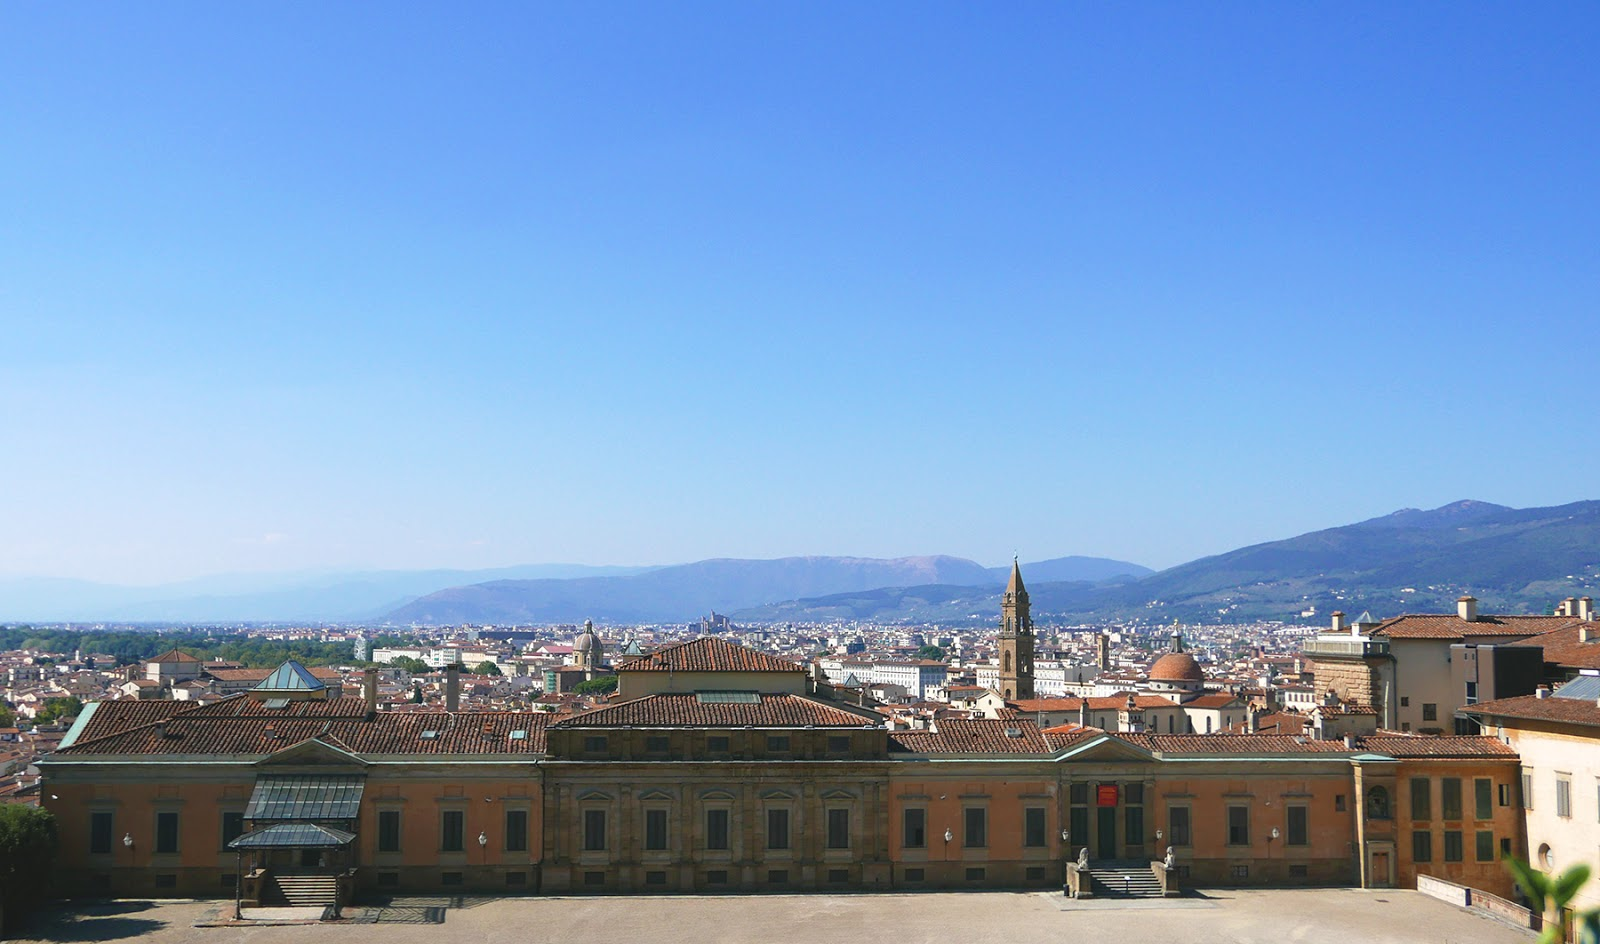 Euriental | luxury travel & style | view from Boboli Gardens, Florence, Italy